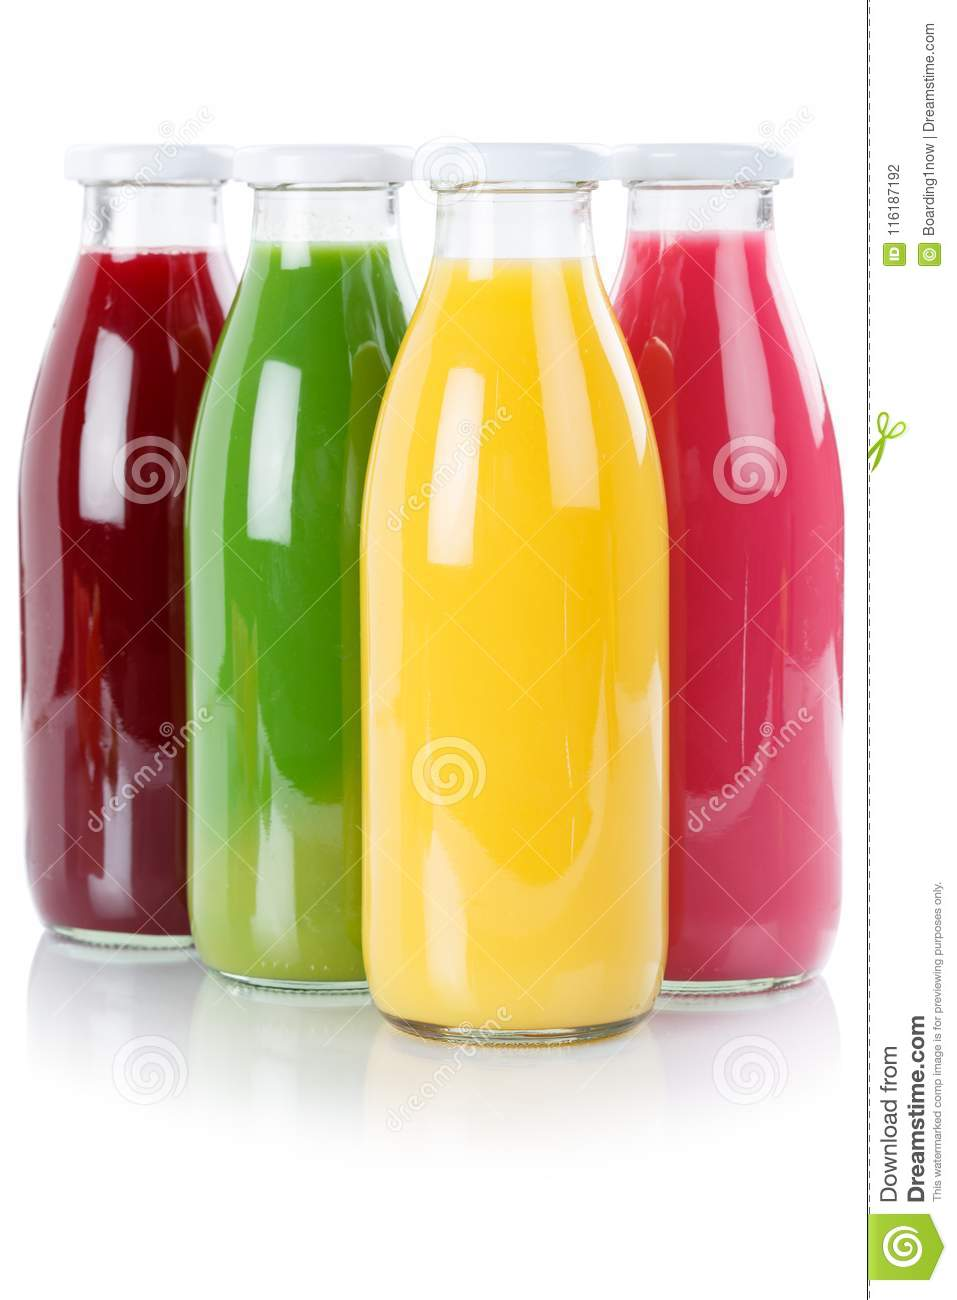 Juice smoothie fruit smoothies in bottle portrait format isolate